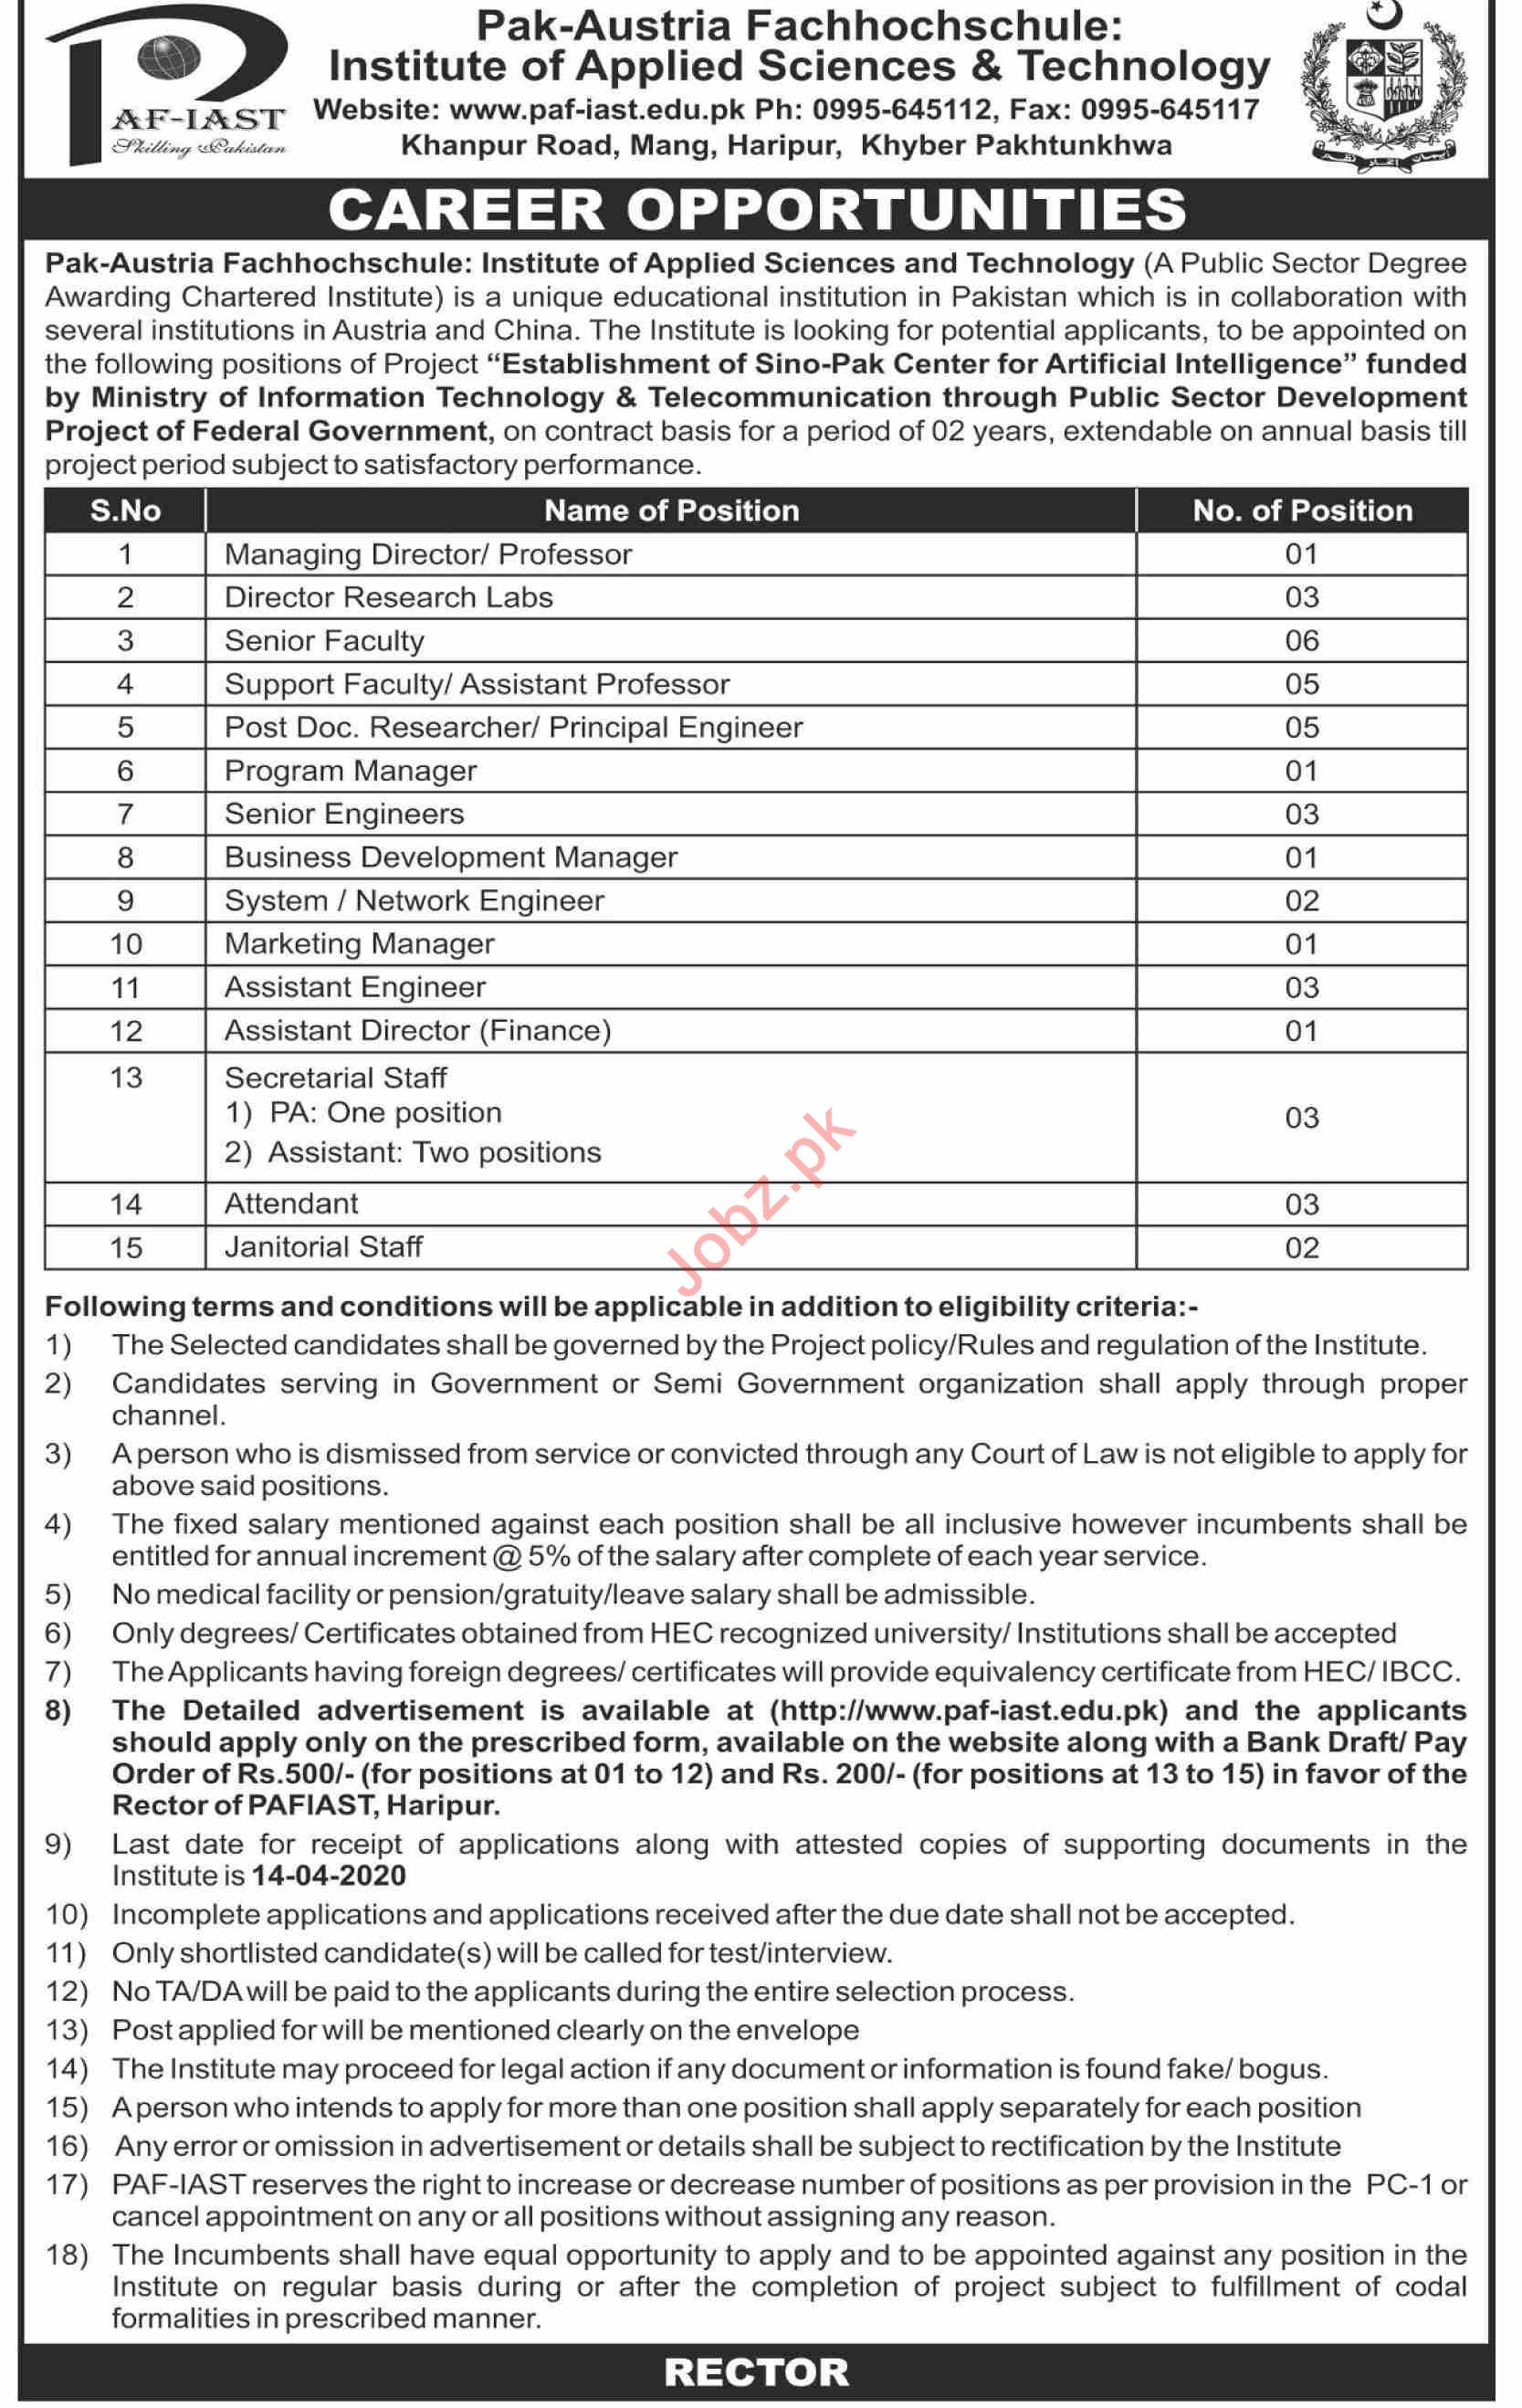 PAF IAST Institute of Applied Science & Technology Jobs 2020